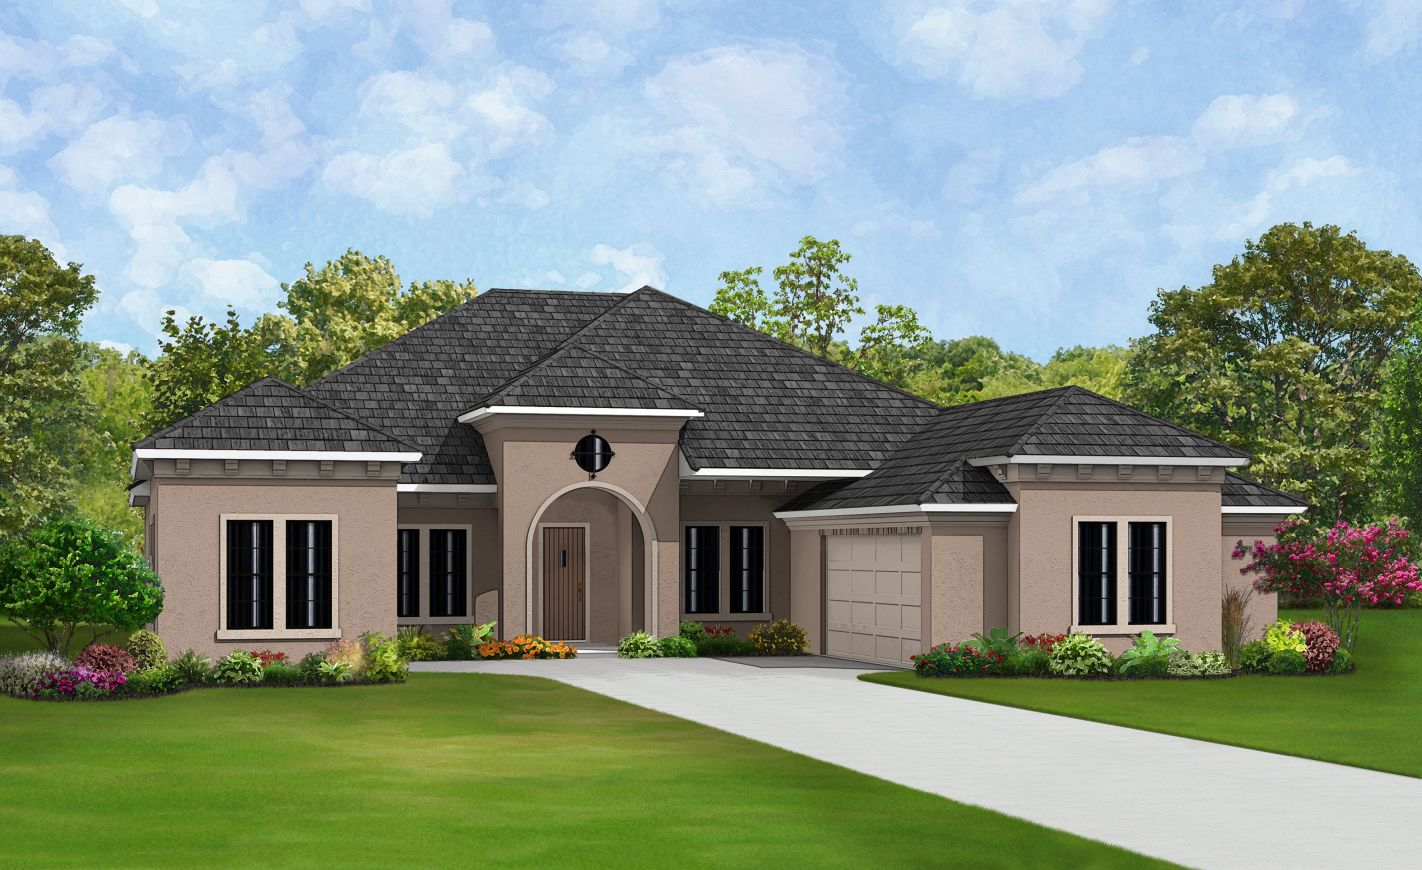 New homes in grand haven palm coast ici homes for Ici floor plans